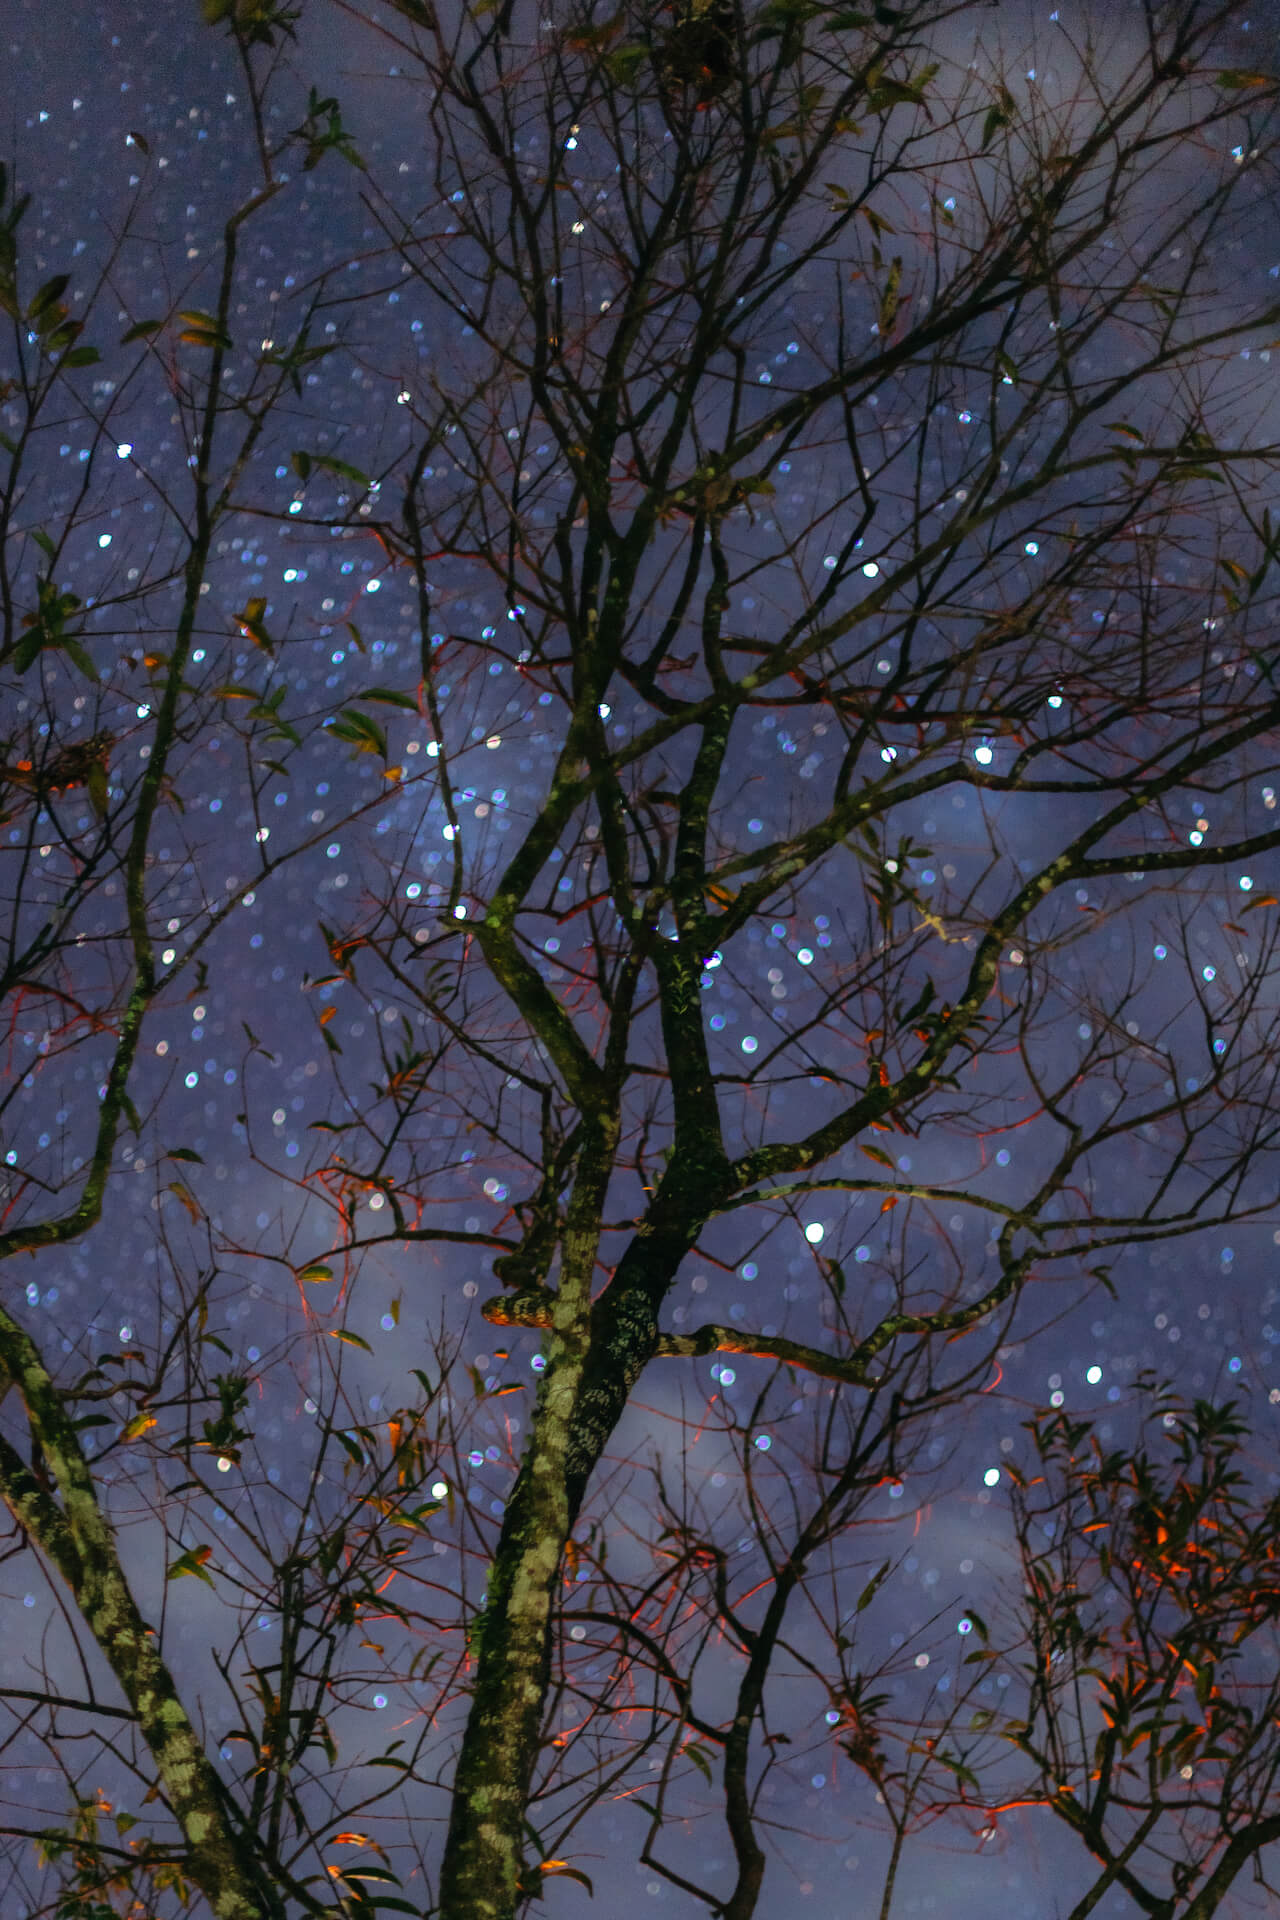 The starry sky behind a silhouette of trees